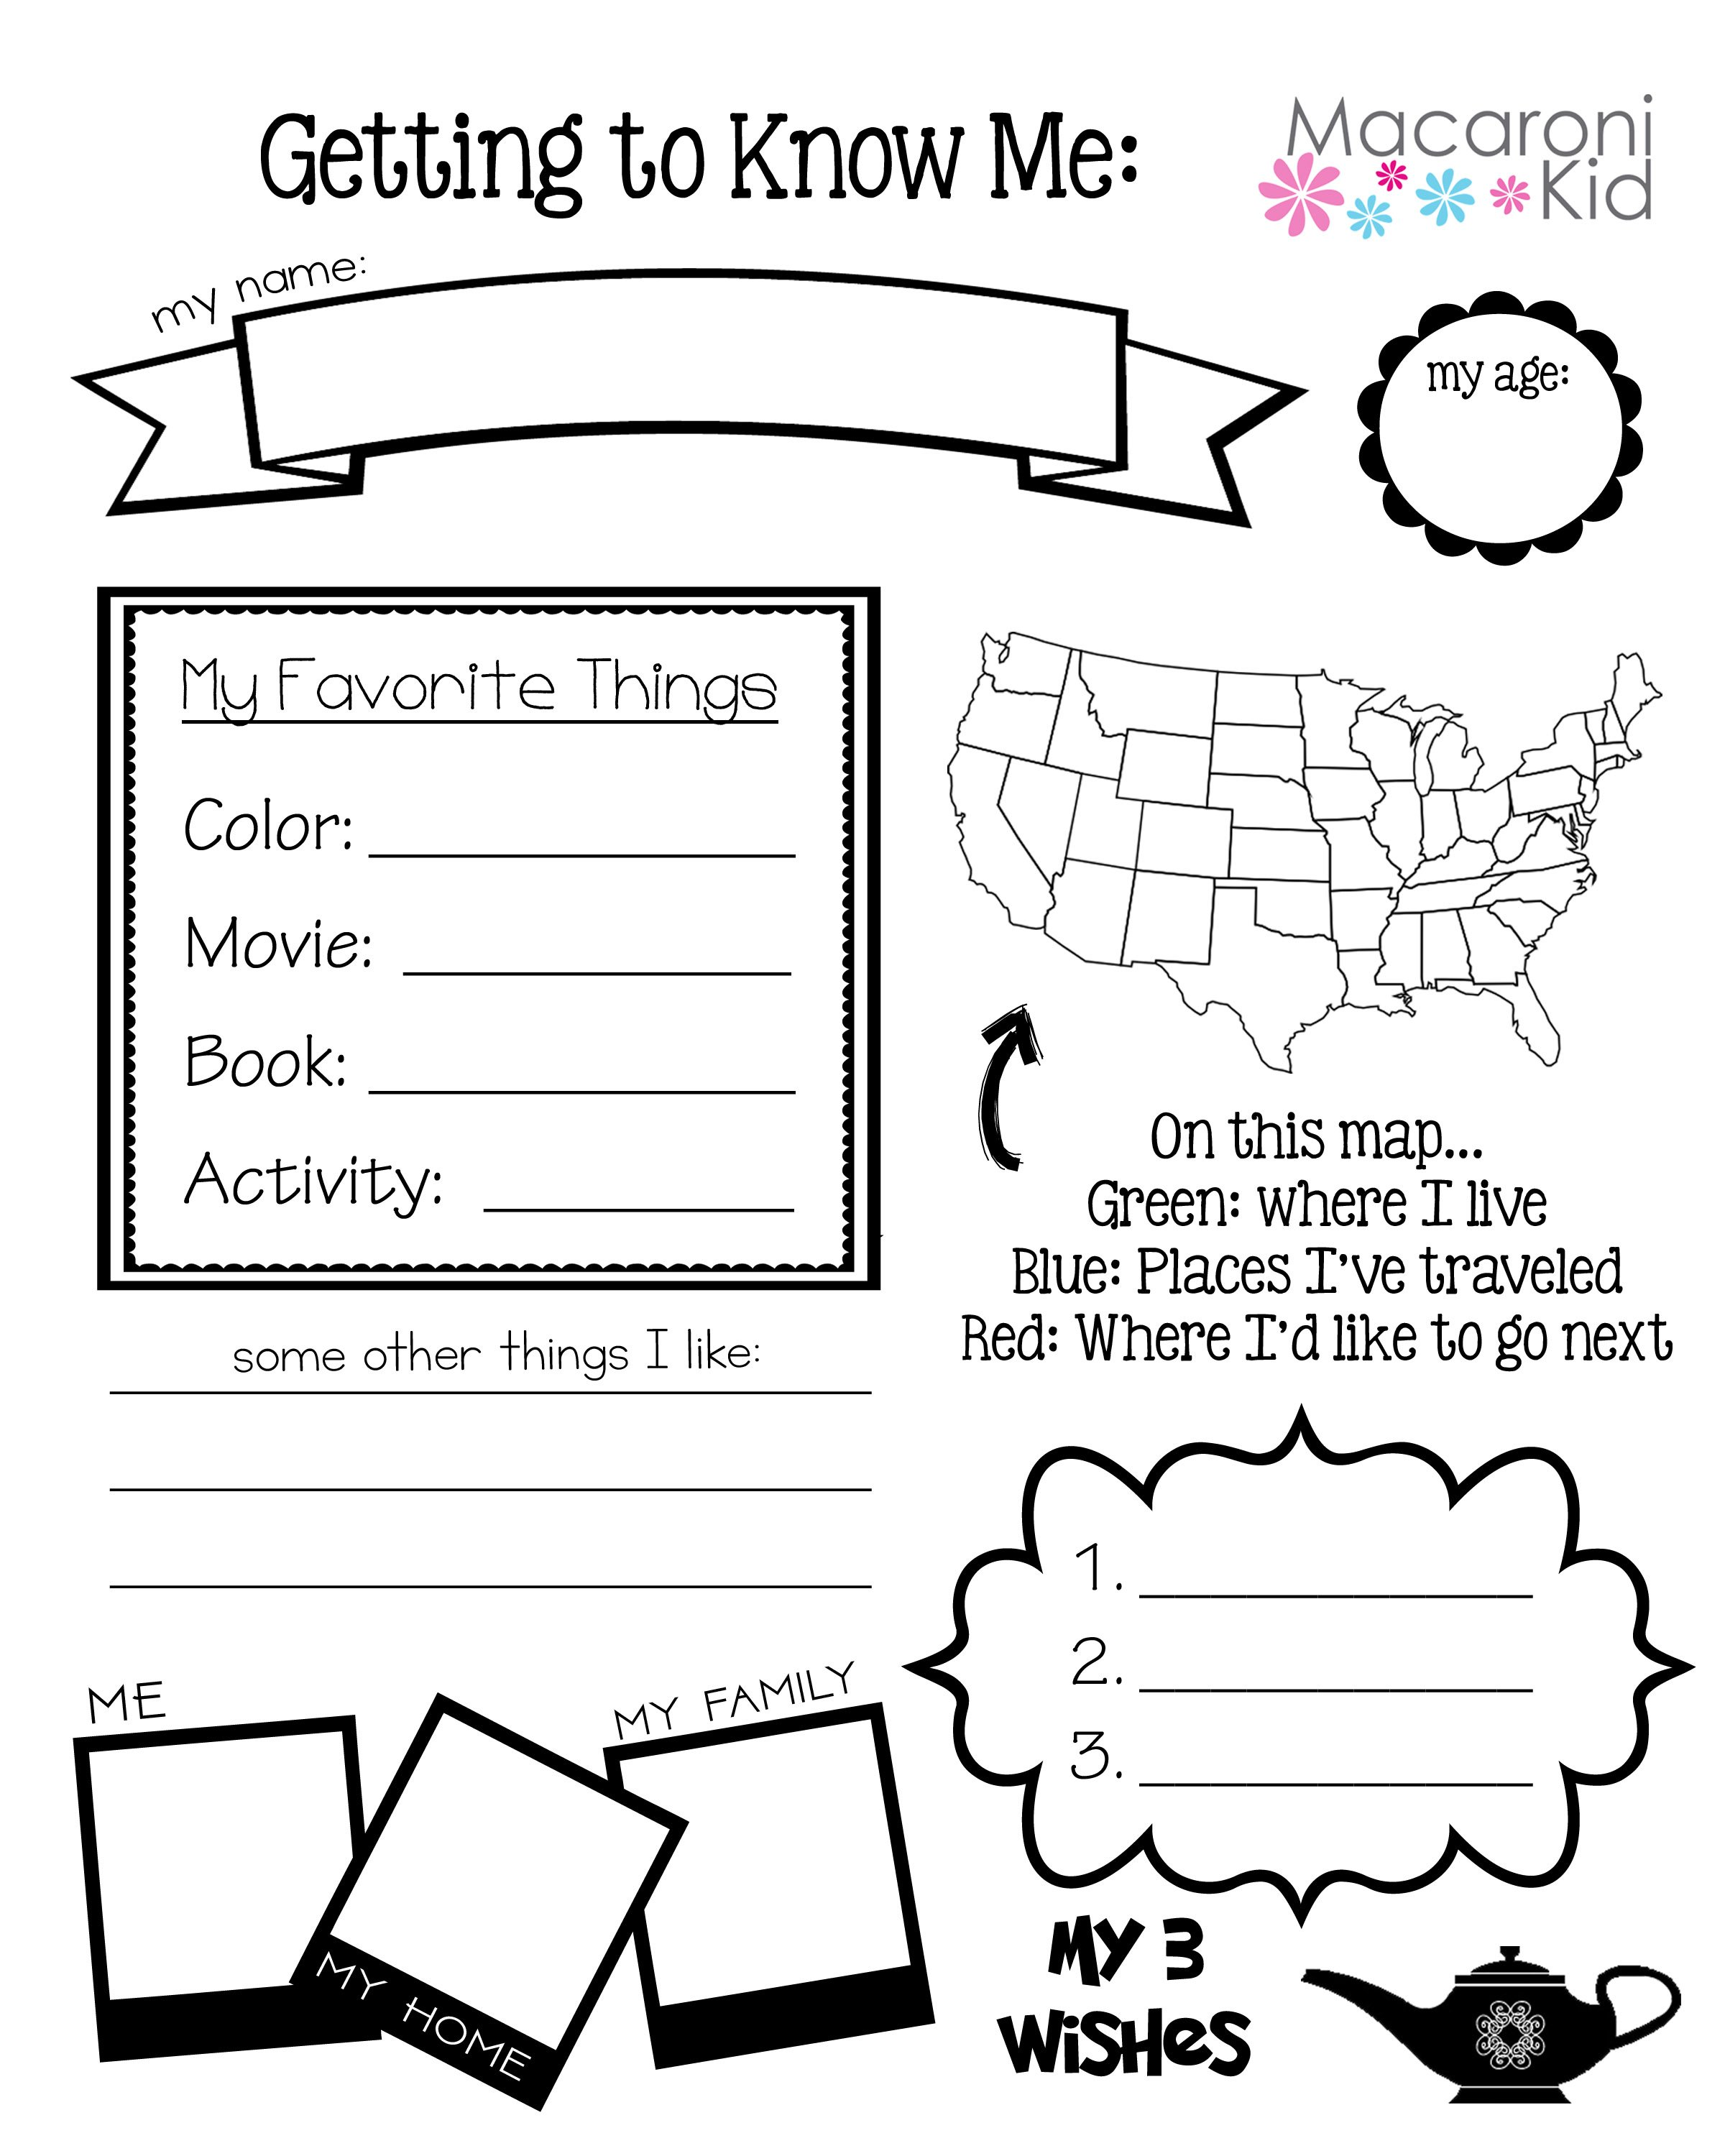 Get to Know Your Pen Pal ~ A Free Guide to Help Break the Ice